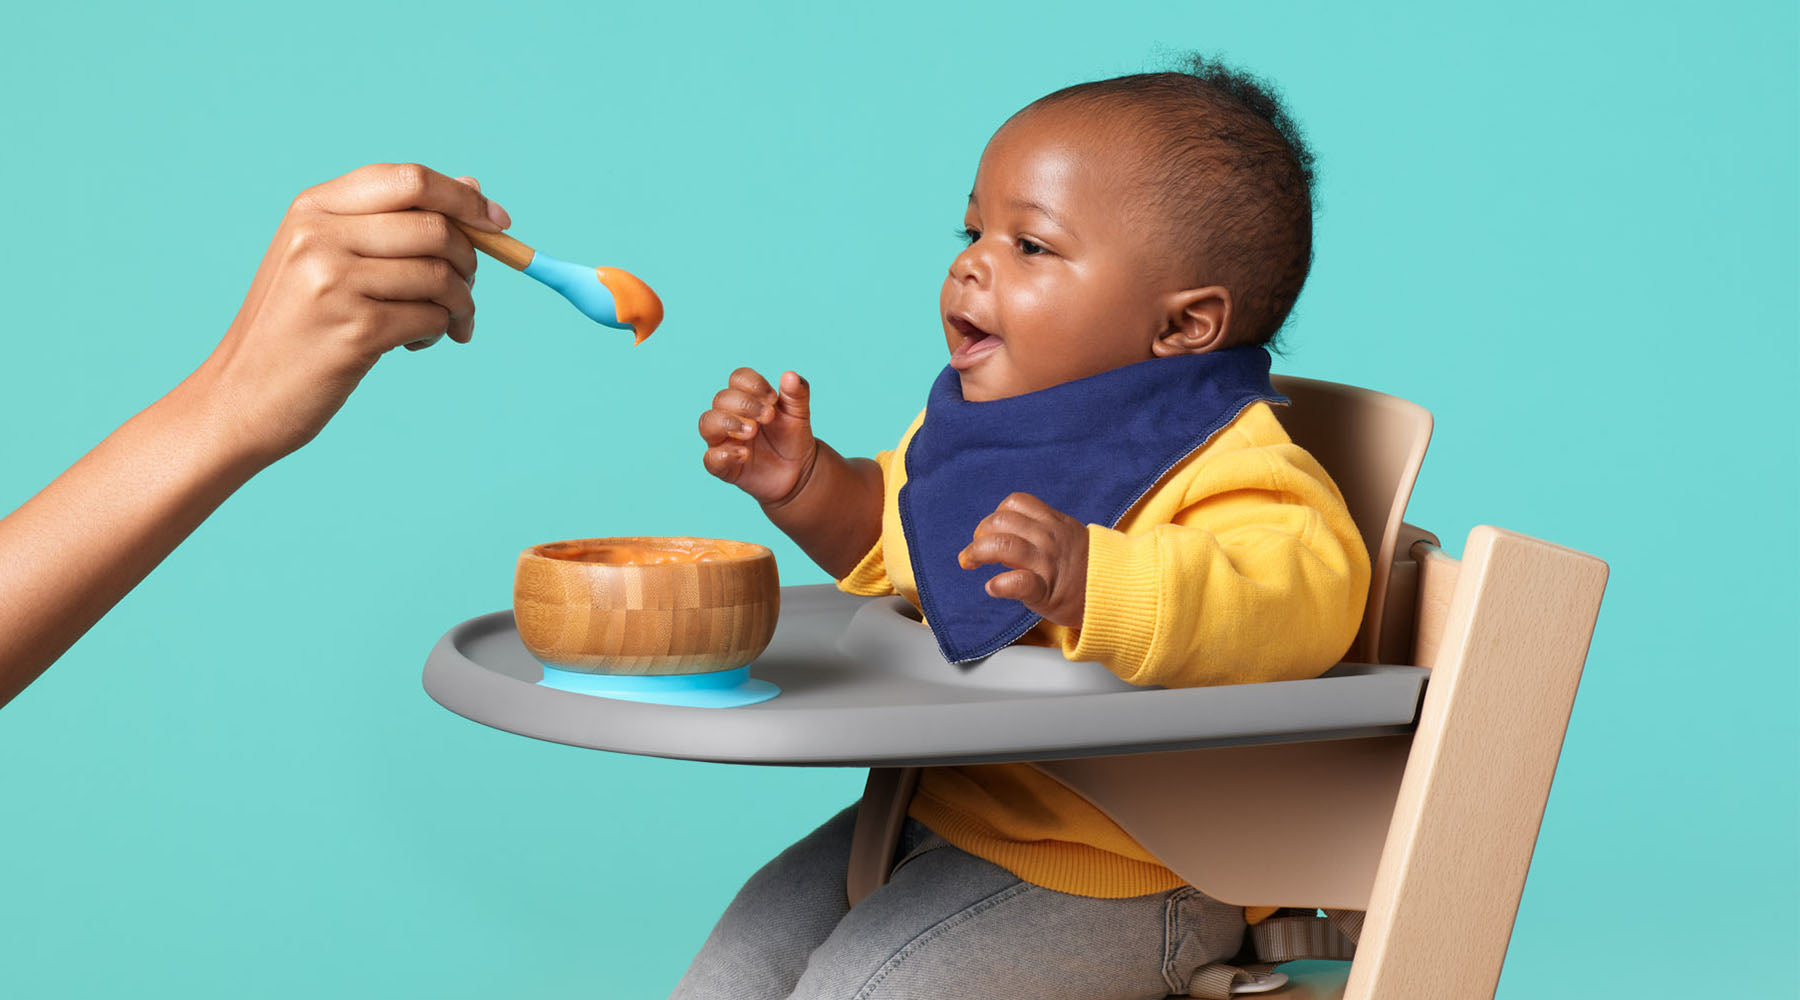 Feeding baby diverse foods